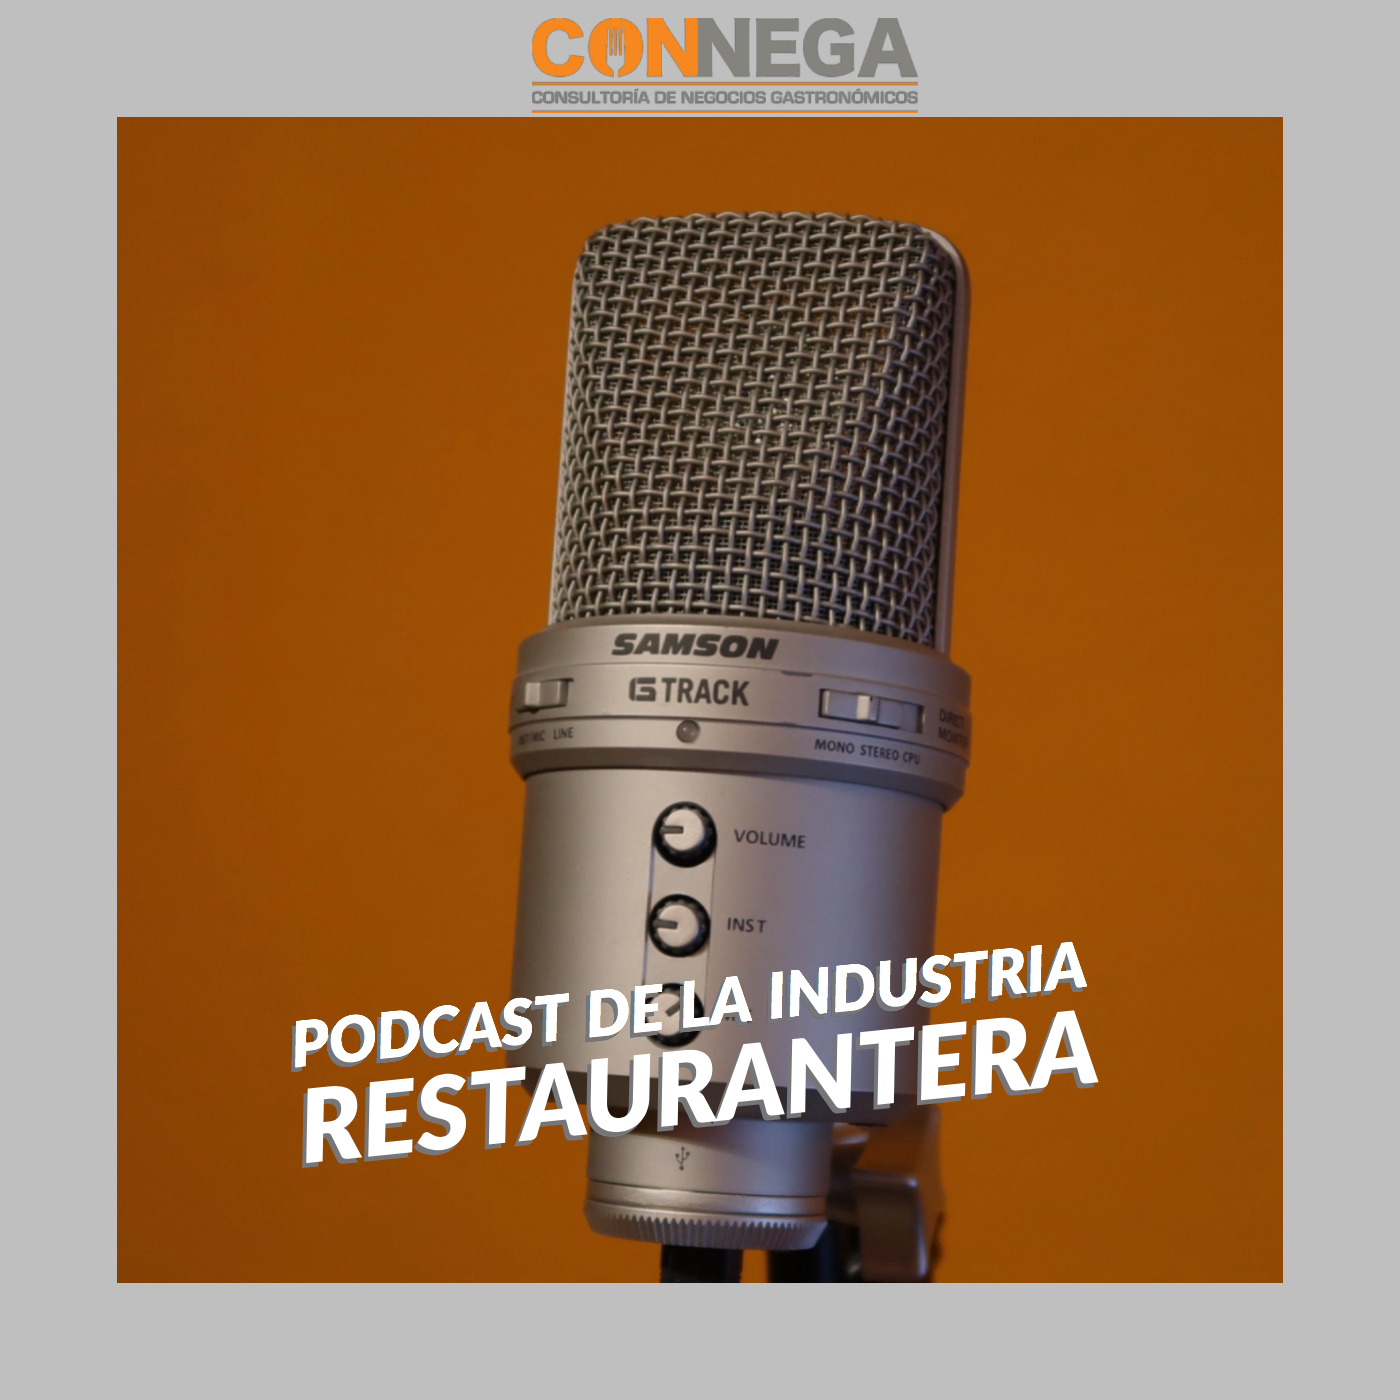 Podcast de la Industria Restaurantera